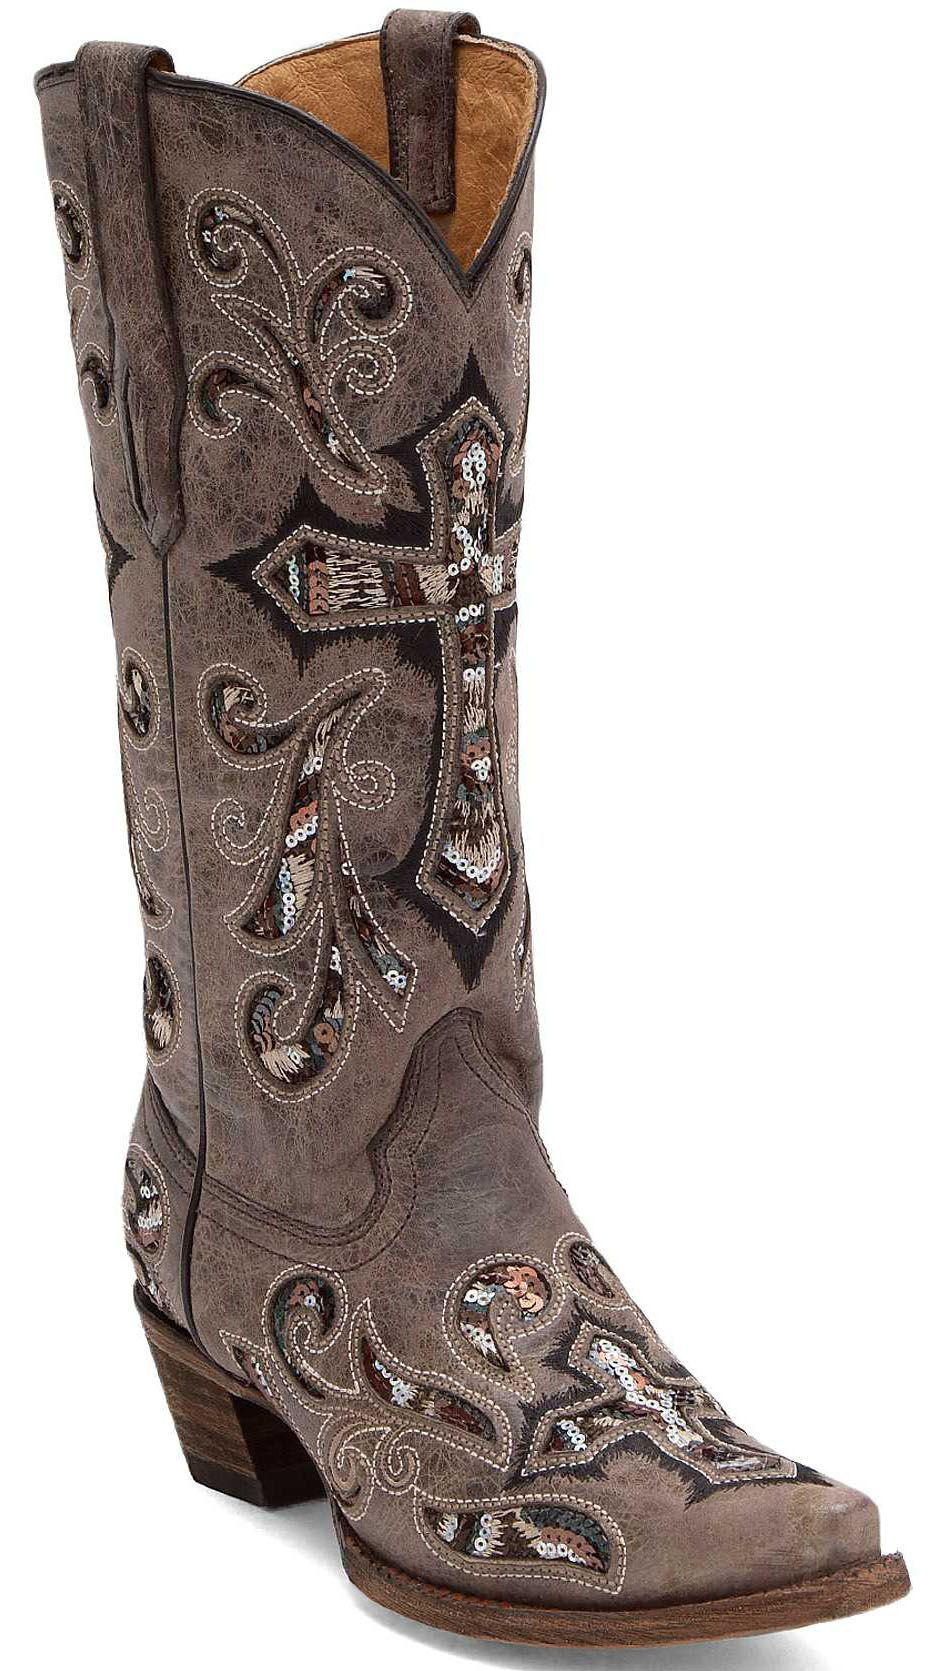 Corral Scarlett Cowboy Boot  Womens BootsShoes  Buckle  Dress Me Up  Boots Cowboy boots